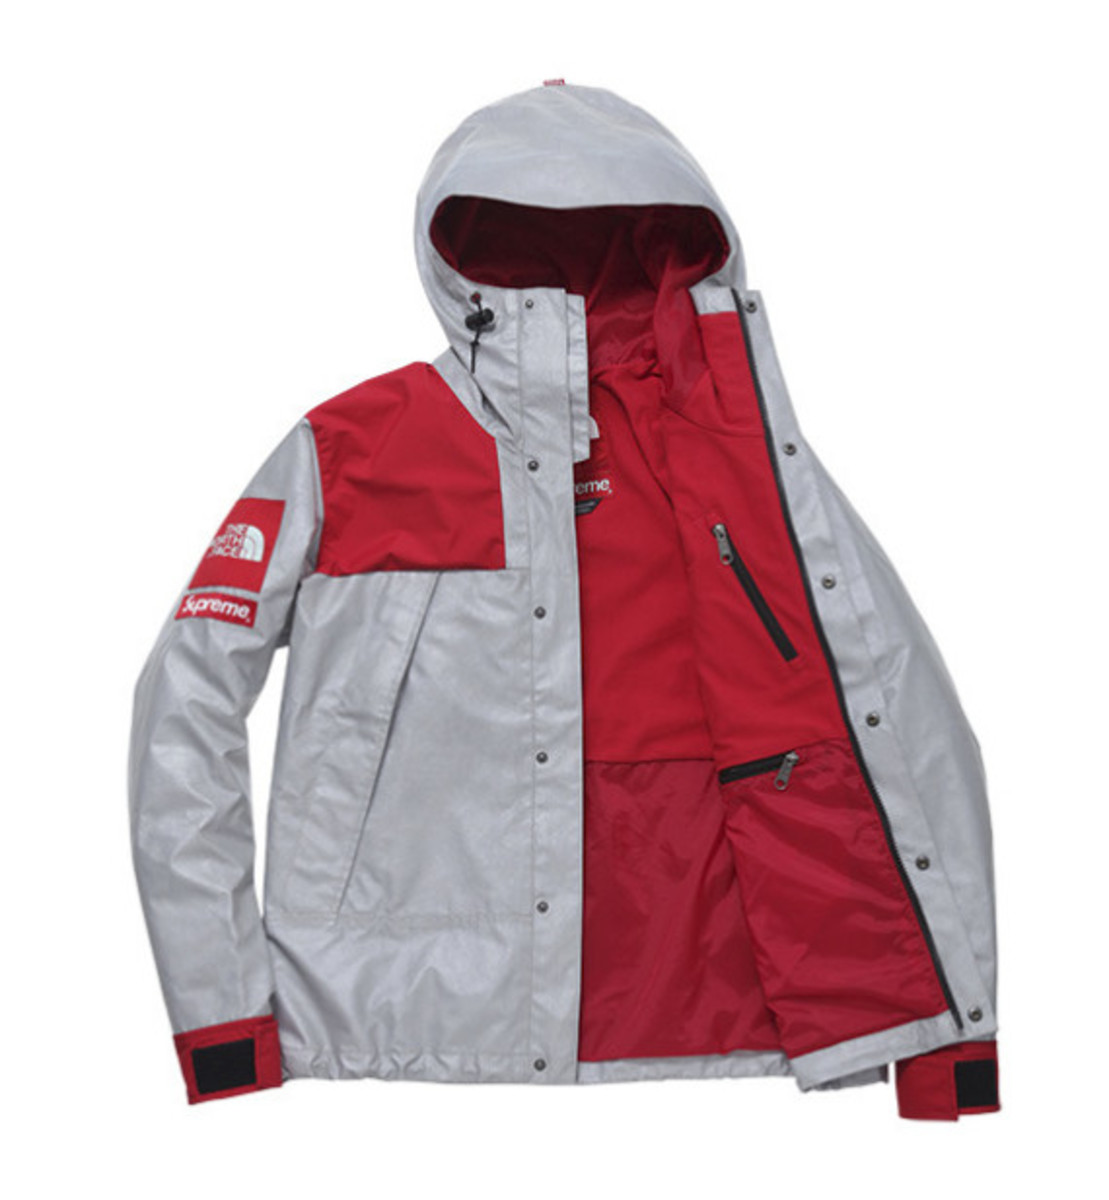 the-north-face-supreme-3m-refelctive-collection-mountain-jacket-08